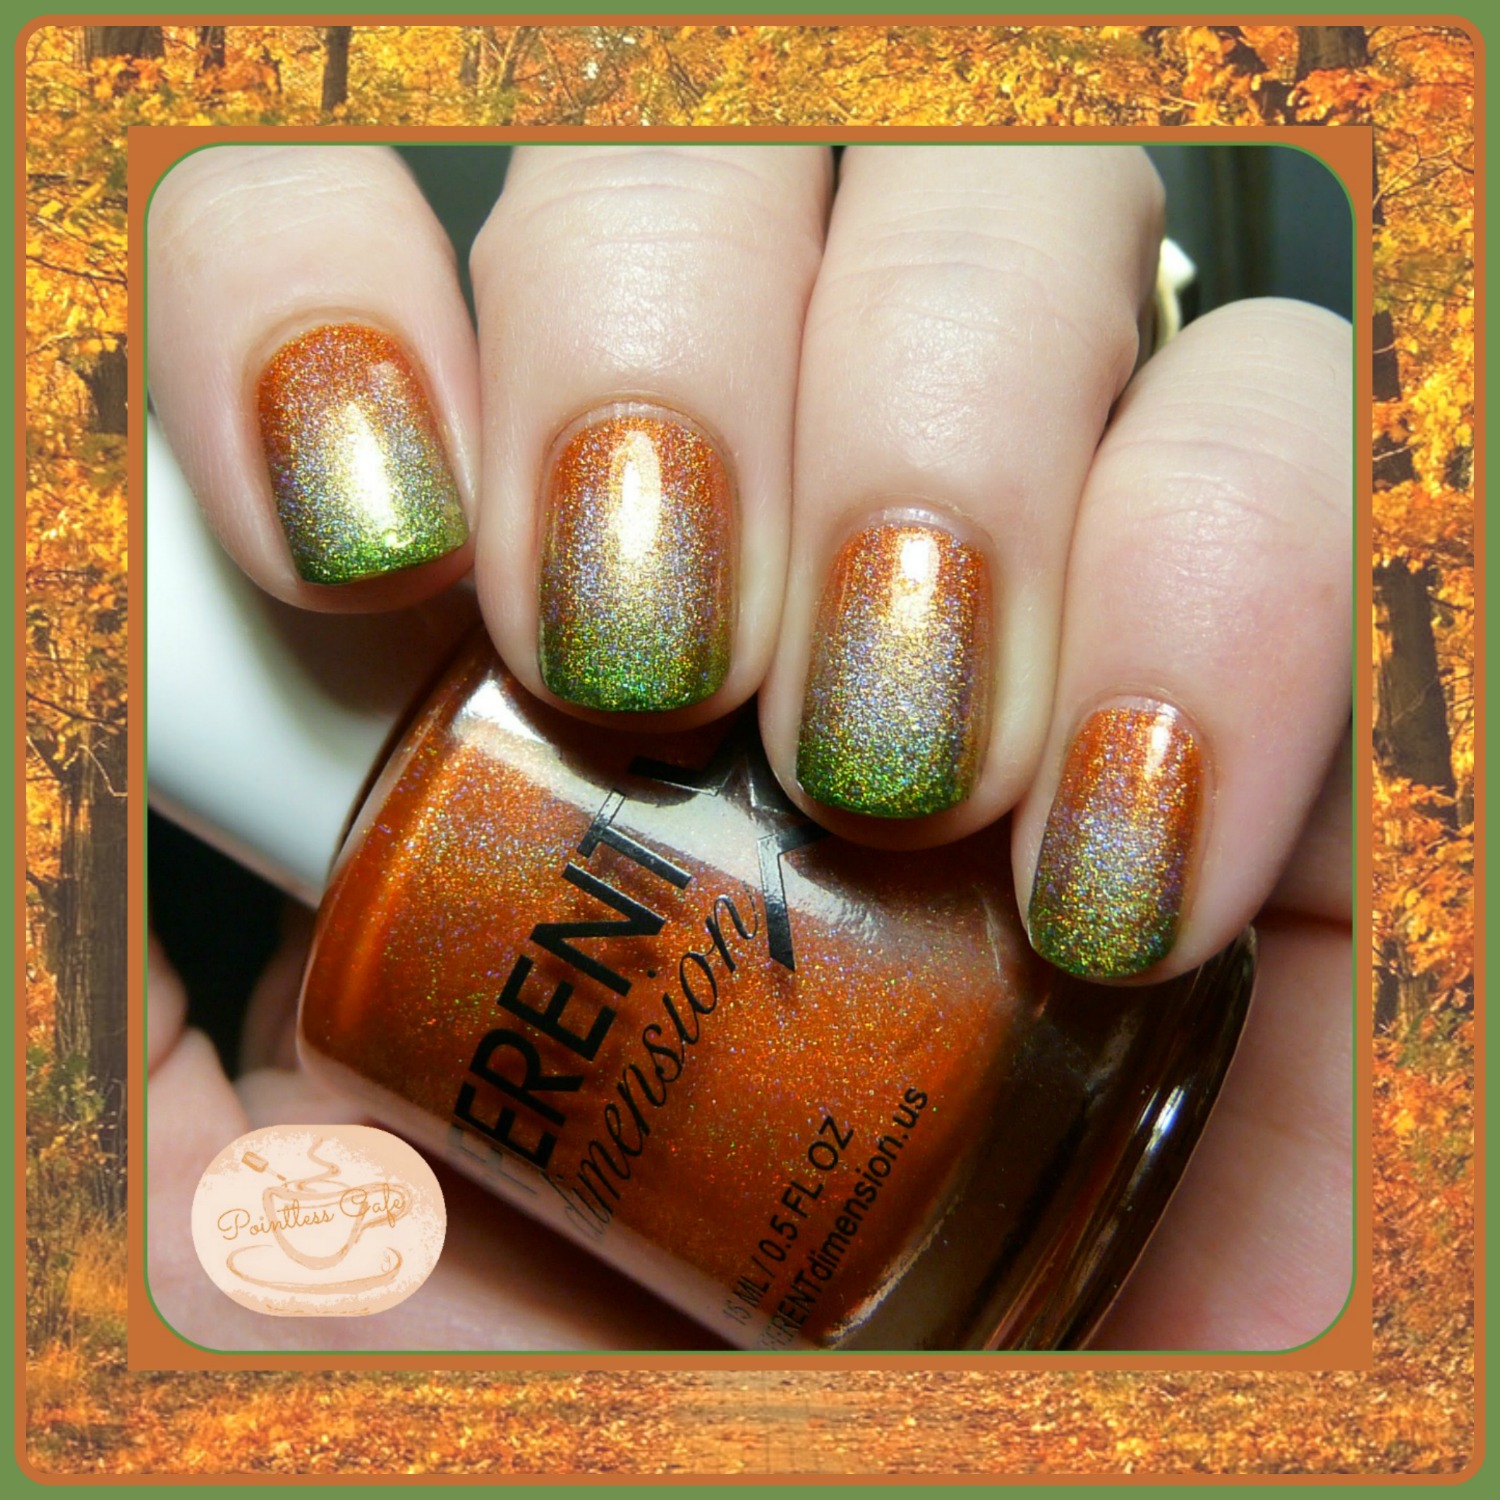 Diy Autumn Gradient Nail Art: Autumn/Thanksgiving Gradient Nail Art